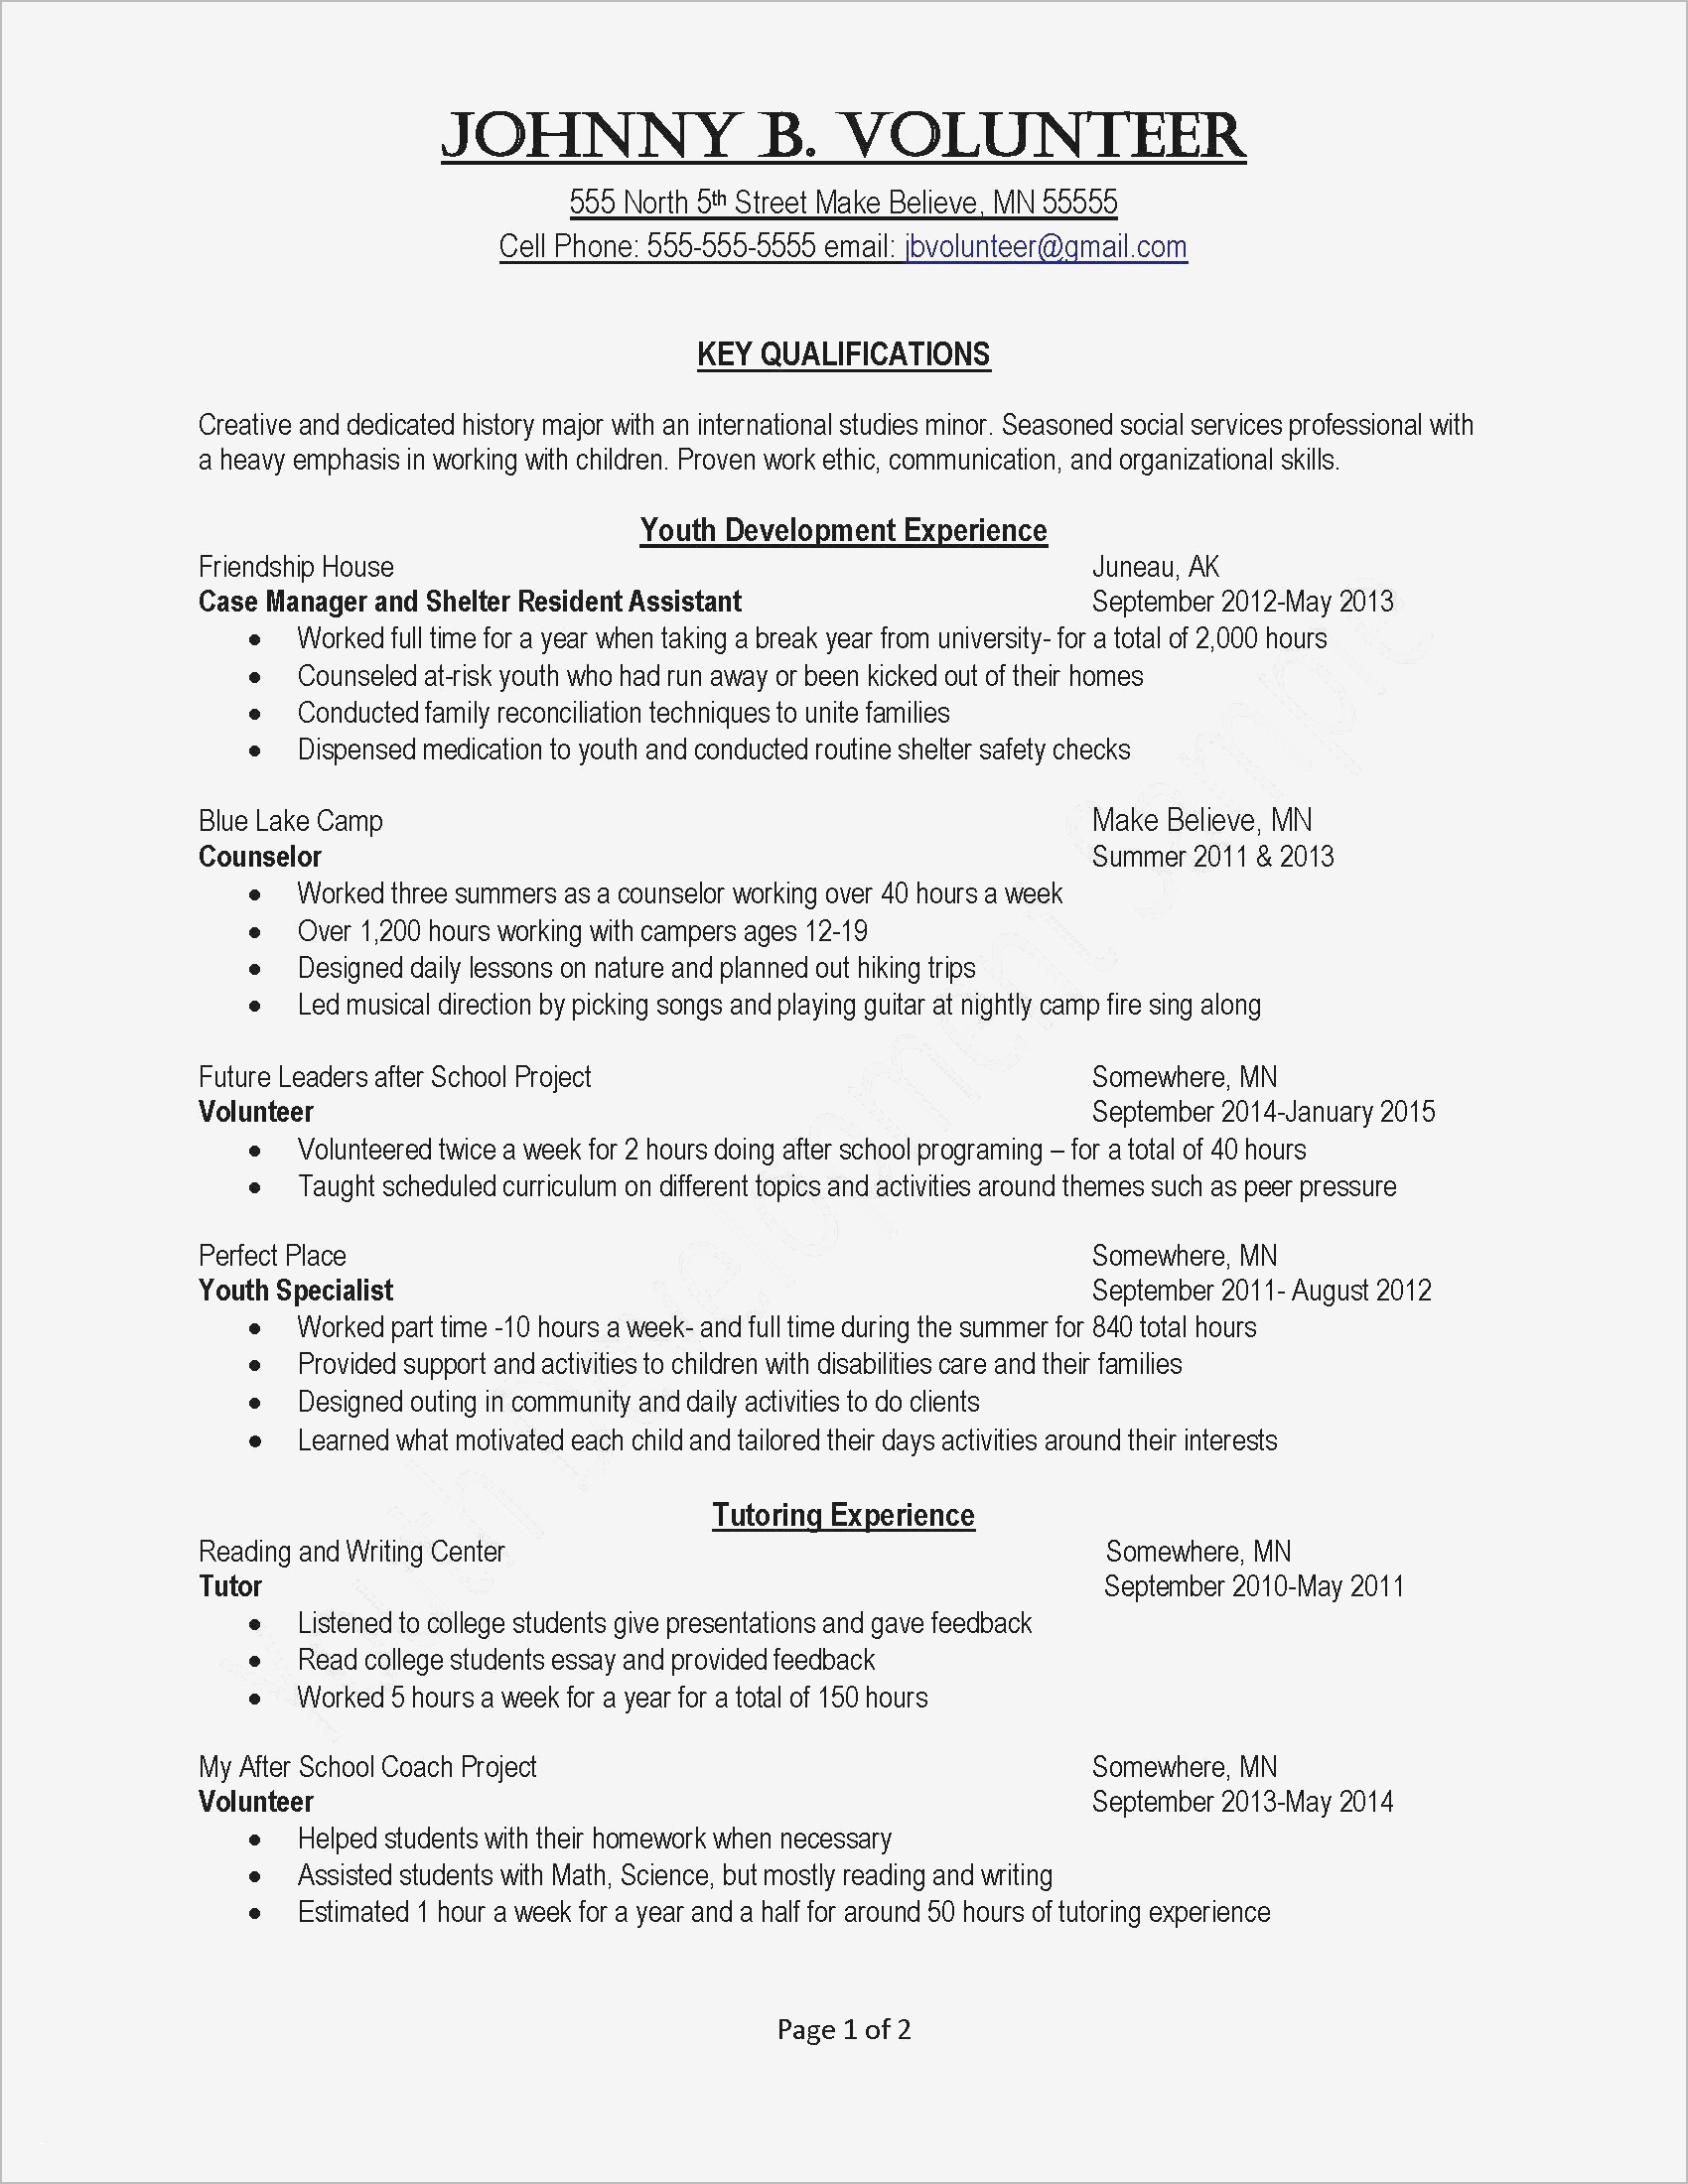 Federal Resume Service - Professional Federal Resume Writers Best Professional Resume